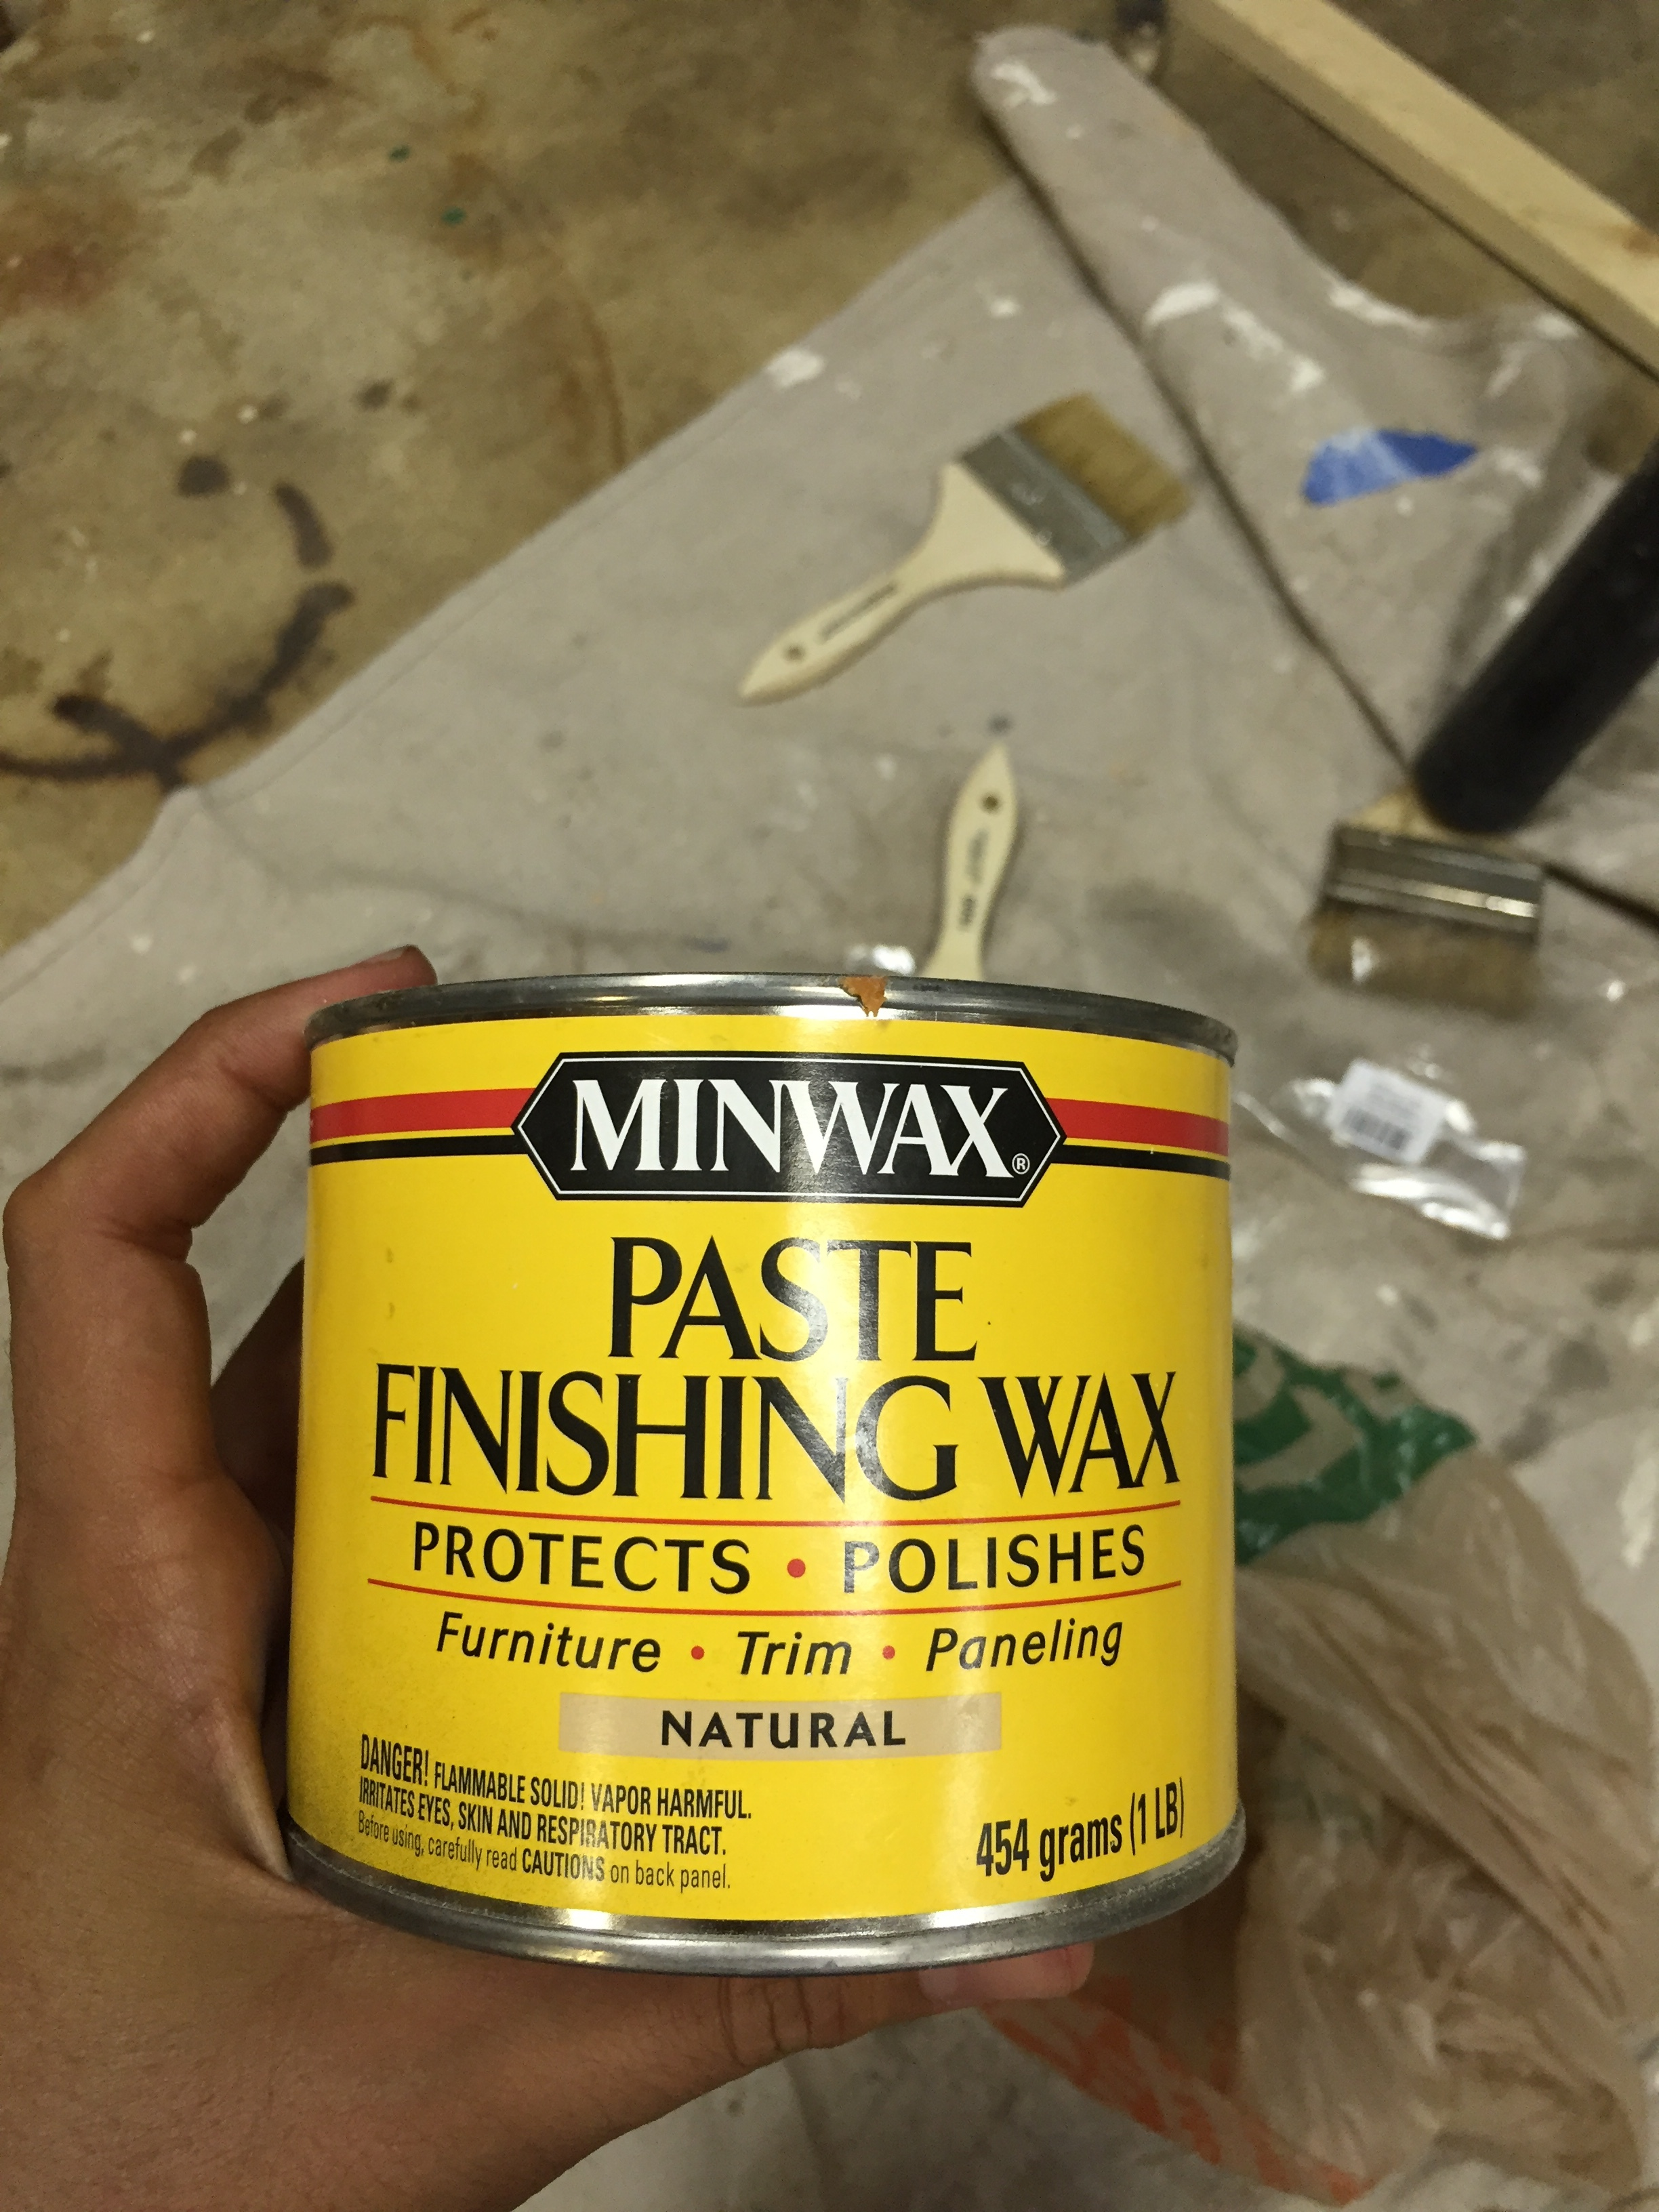 Lastly, we used this paste finishing wax only on the table top.